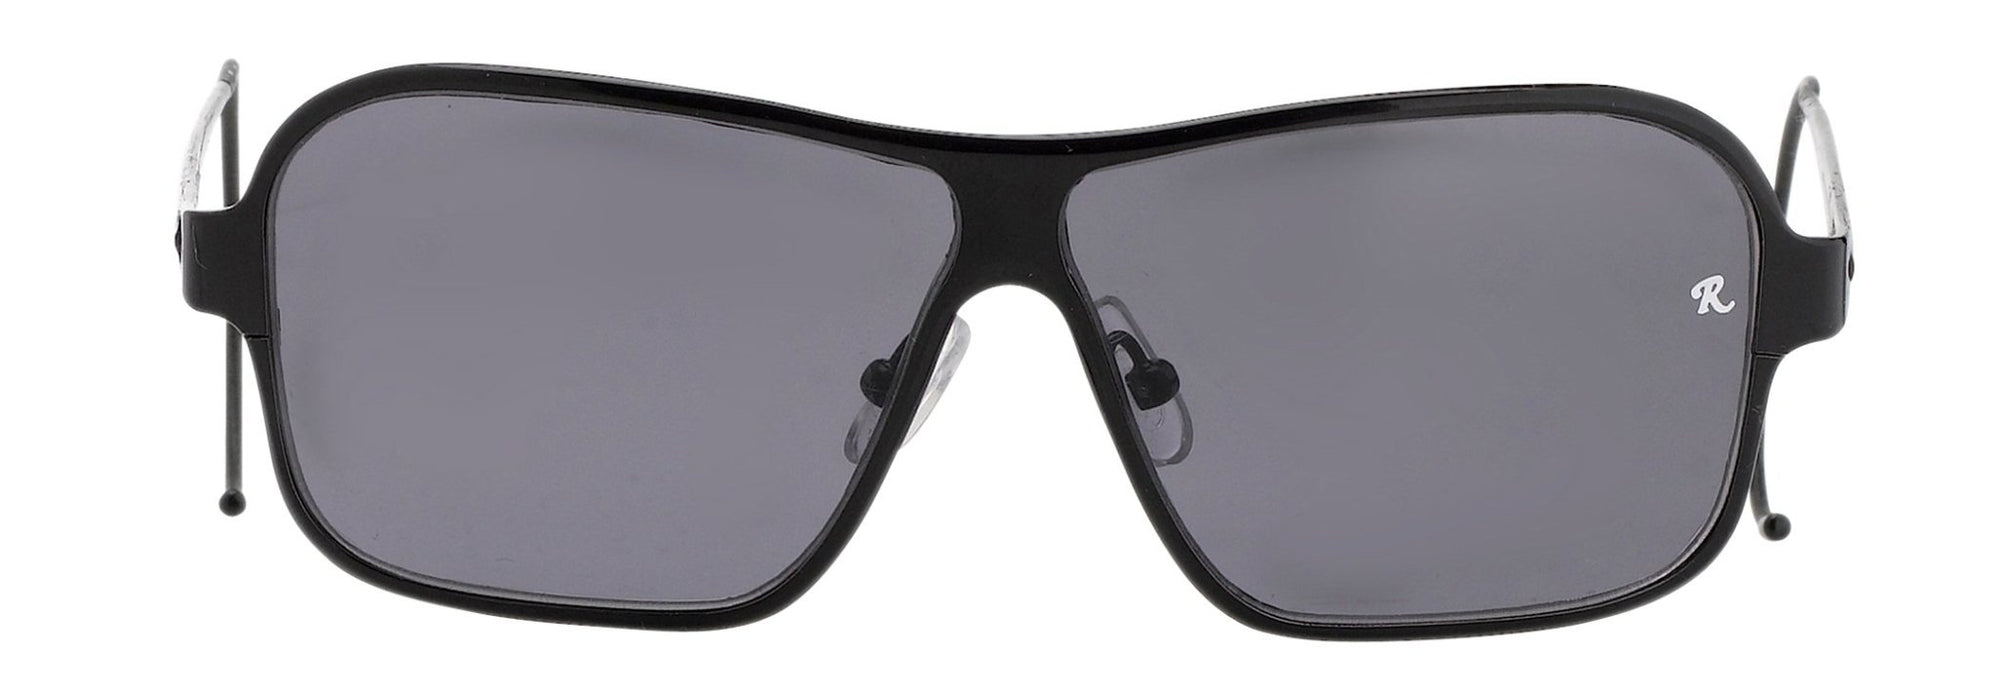 Raf Simons Sunglasses Rectangular Black and Grey Lenses Category 4 - RAF19C3SUN - Watches & Crystals